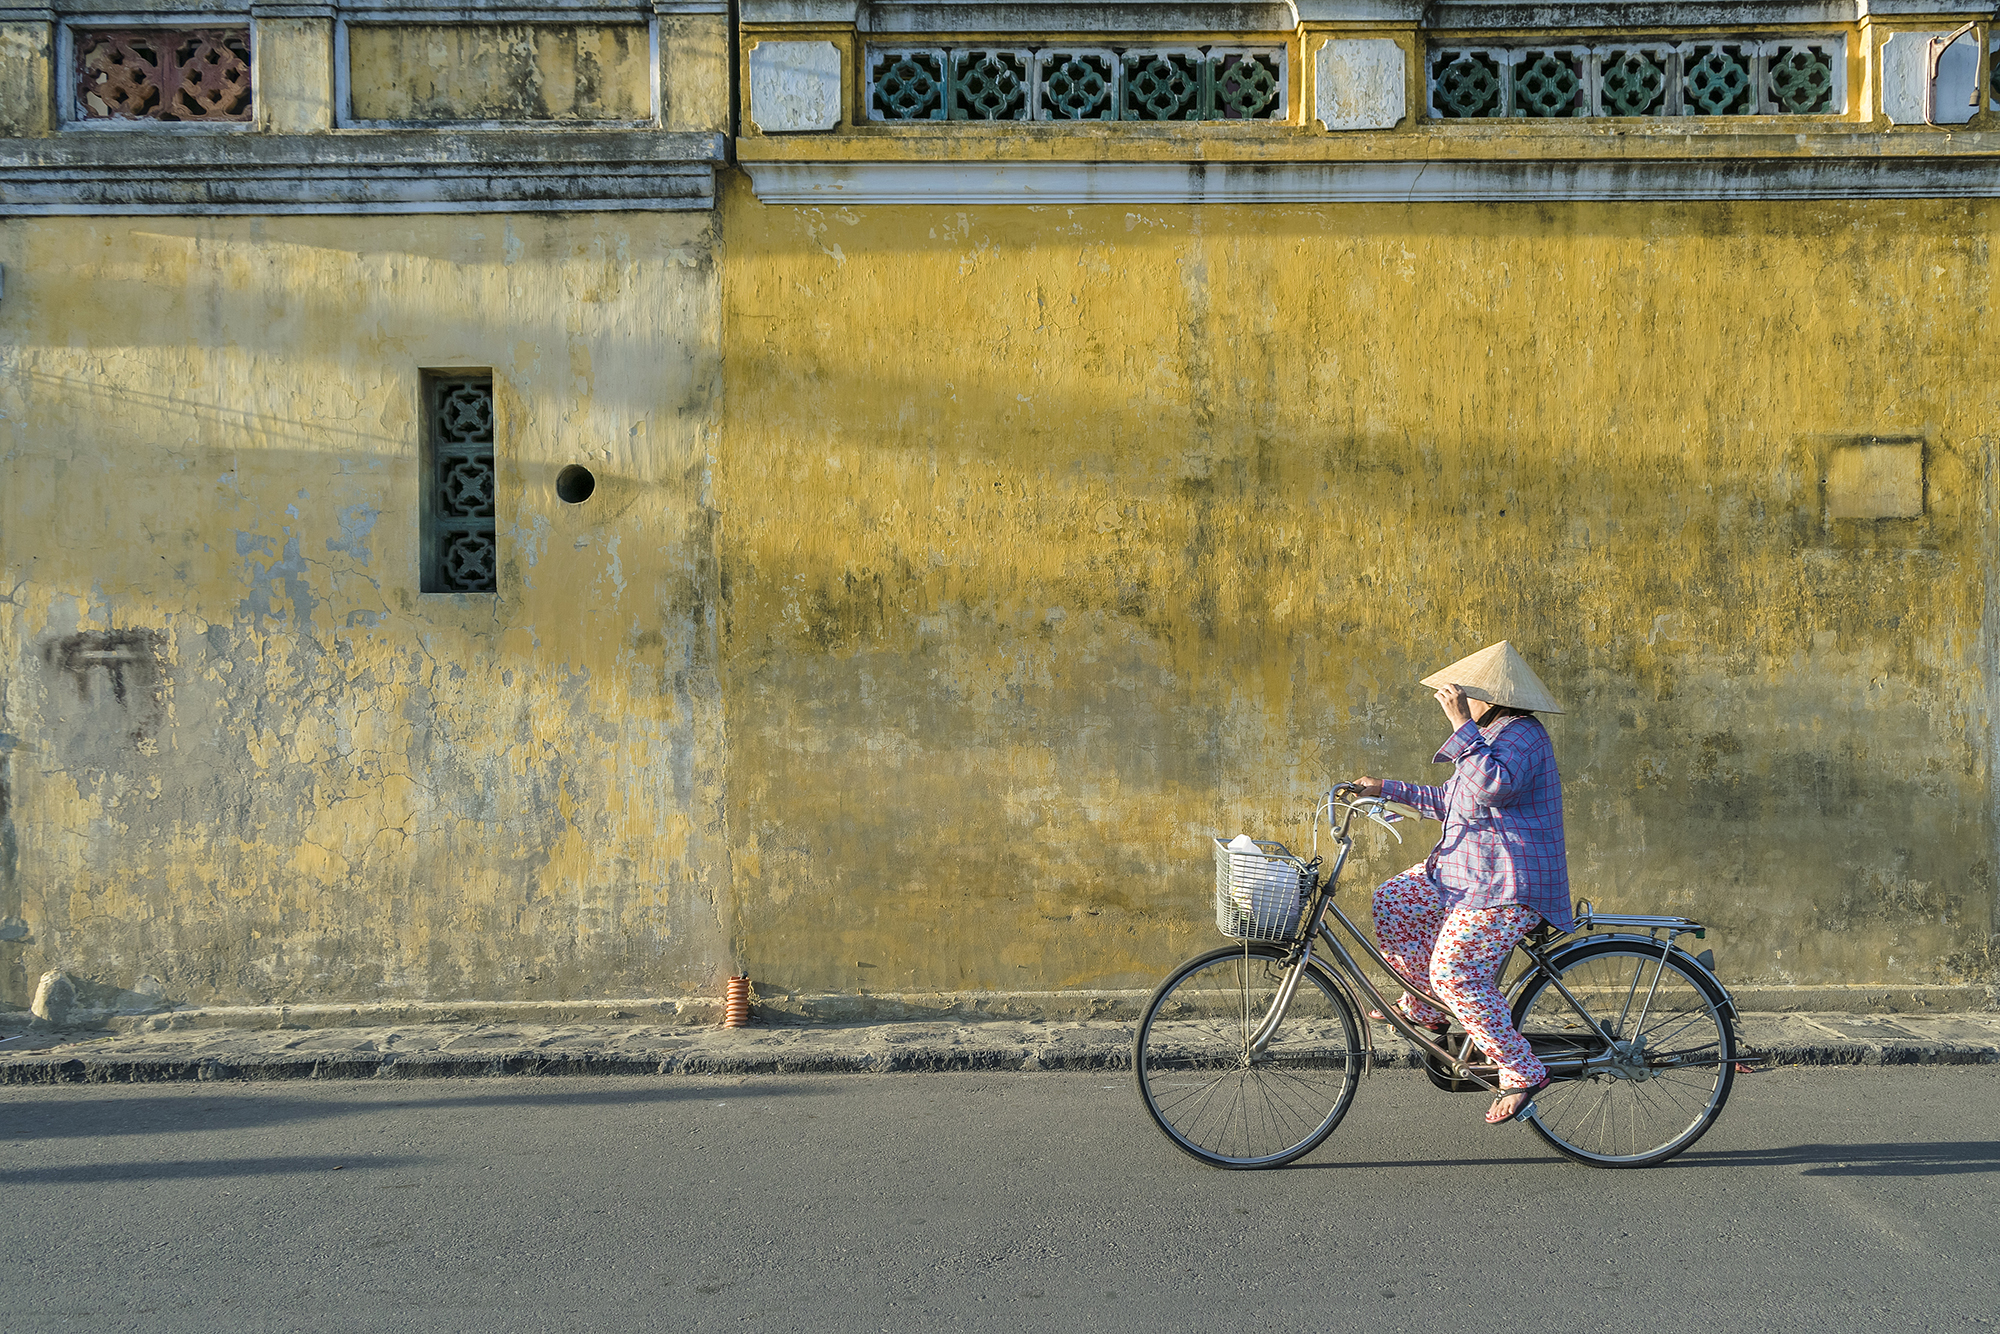 Check out: Hue, Vietnam's former imperial capital